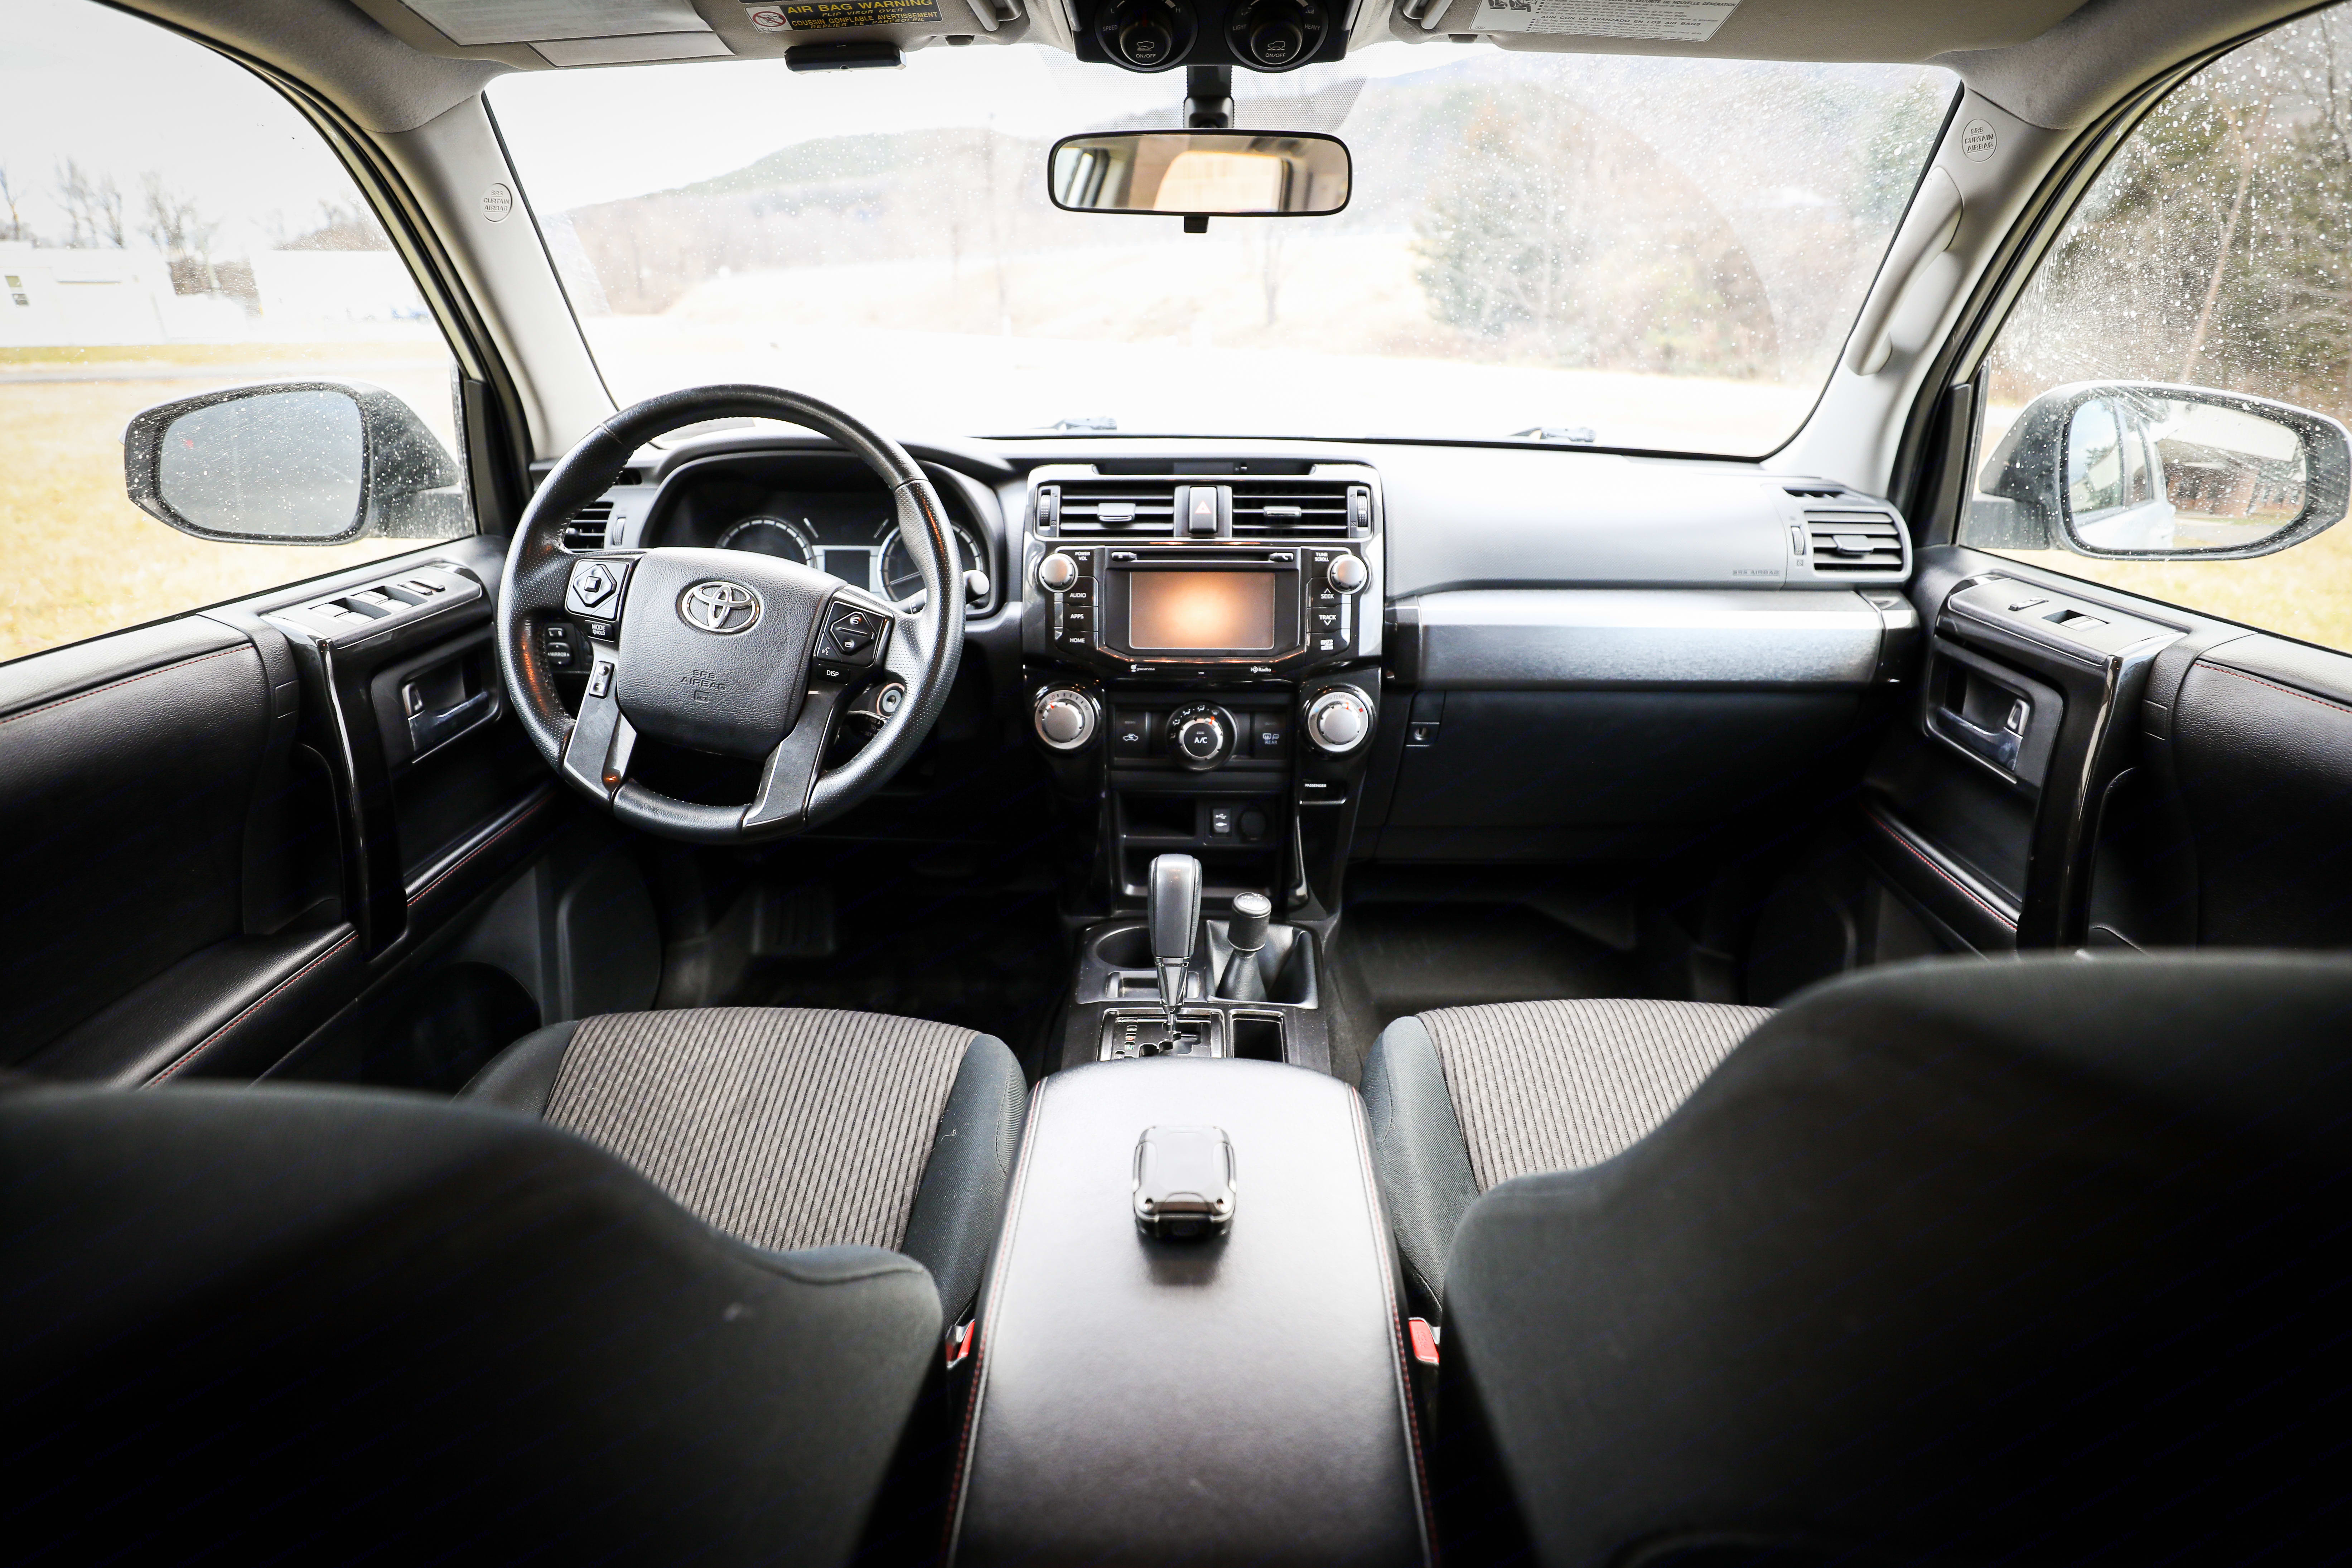 Seneca's interior features all the modern luxuries including a Bluetooth stereo, GPS and a host of apps to complete your adventures on the road.. Toyota 4Runner 2015